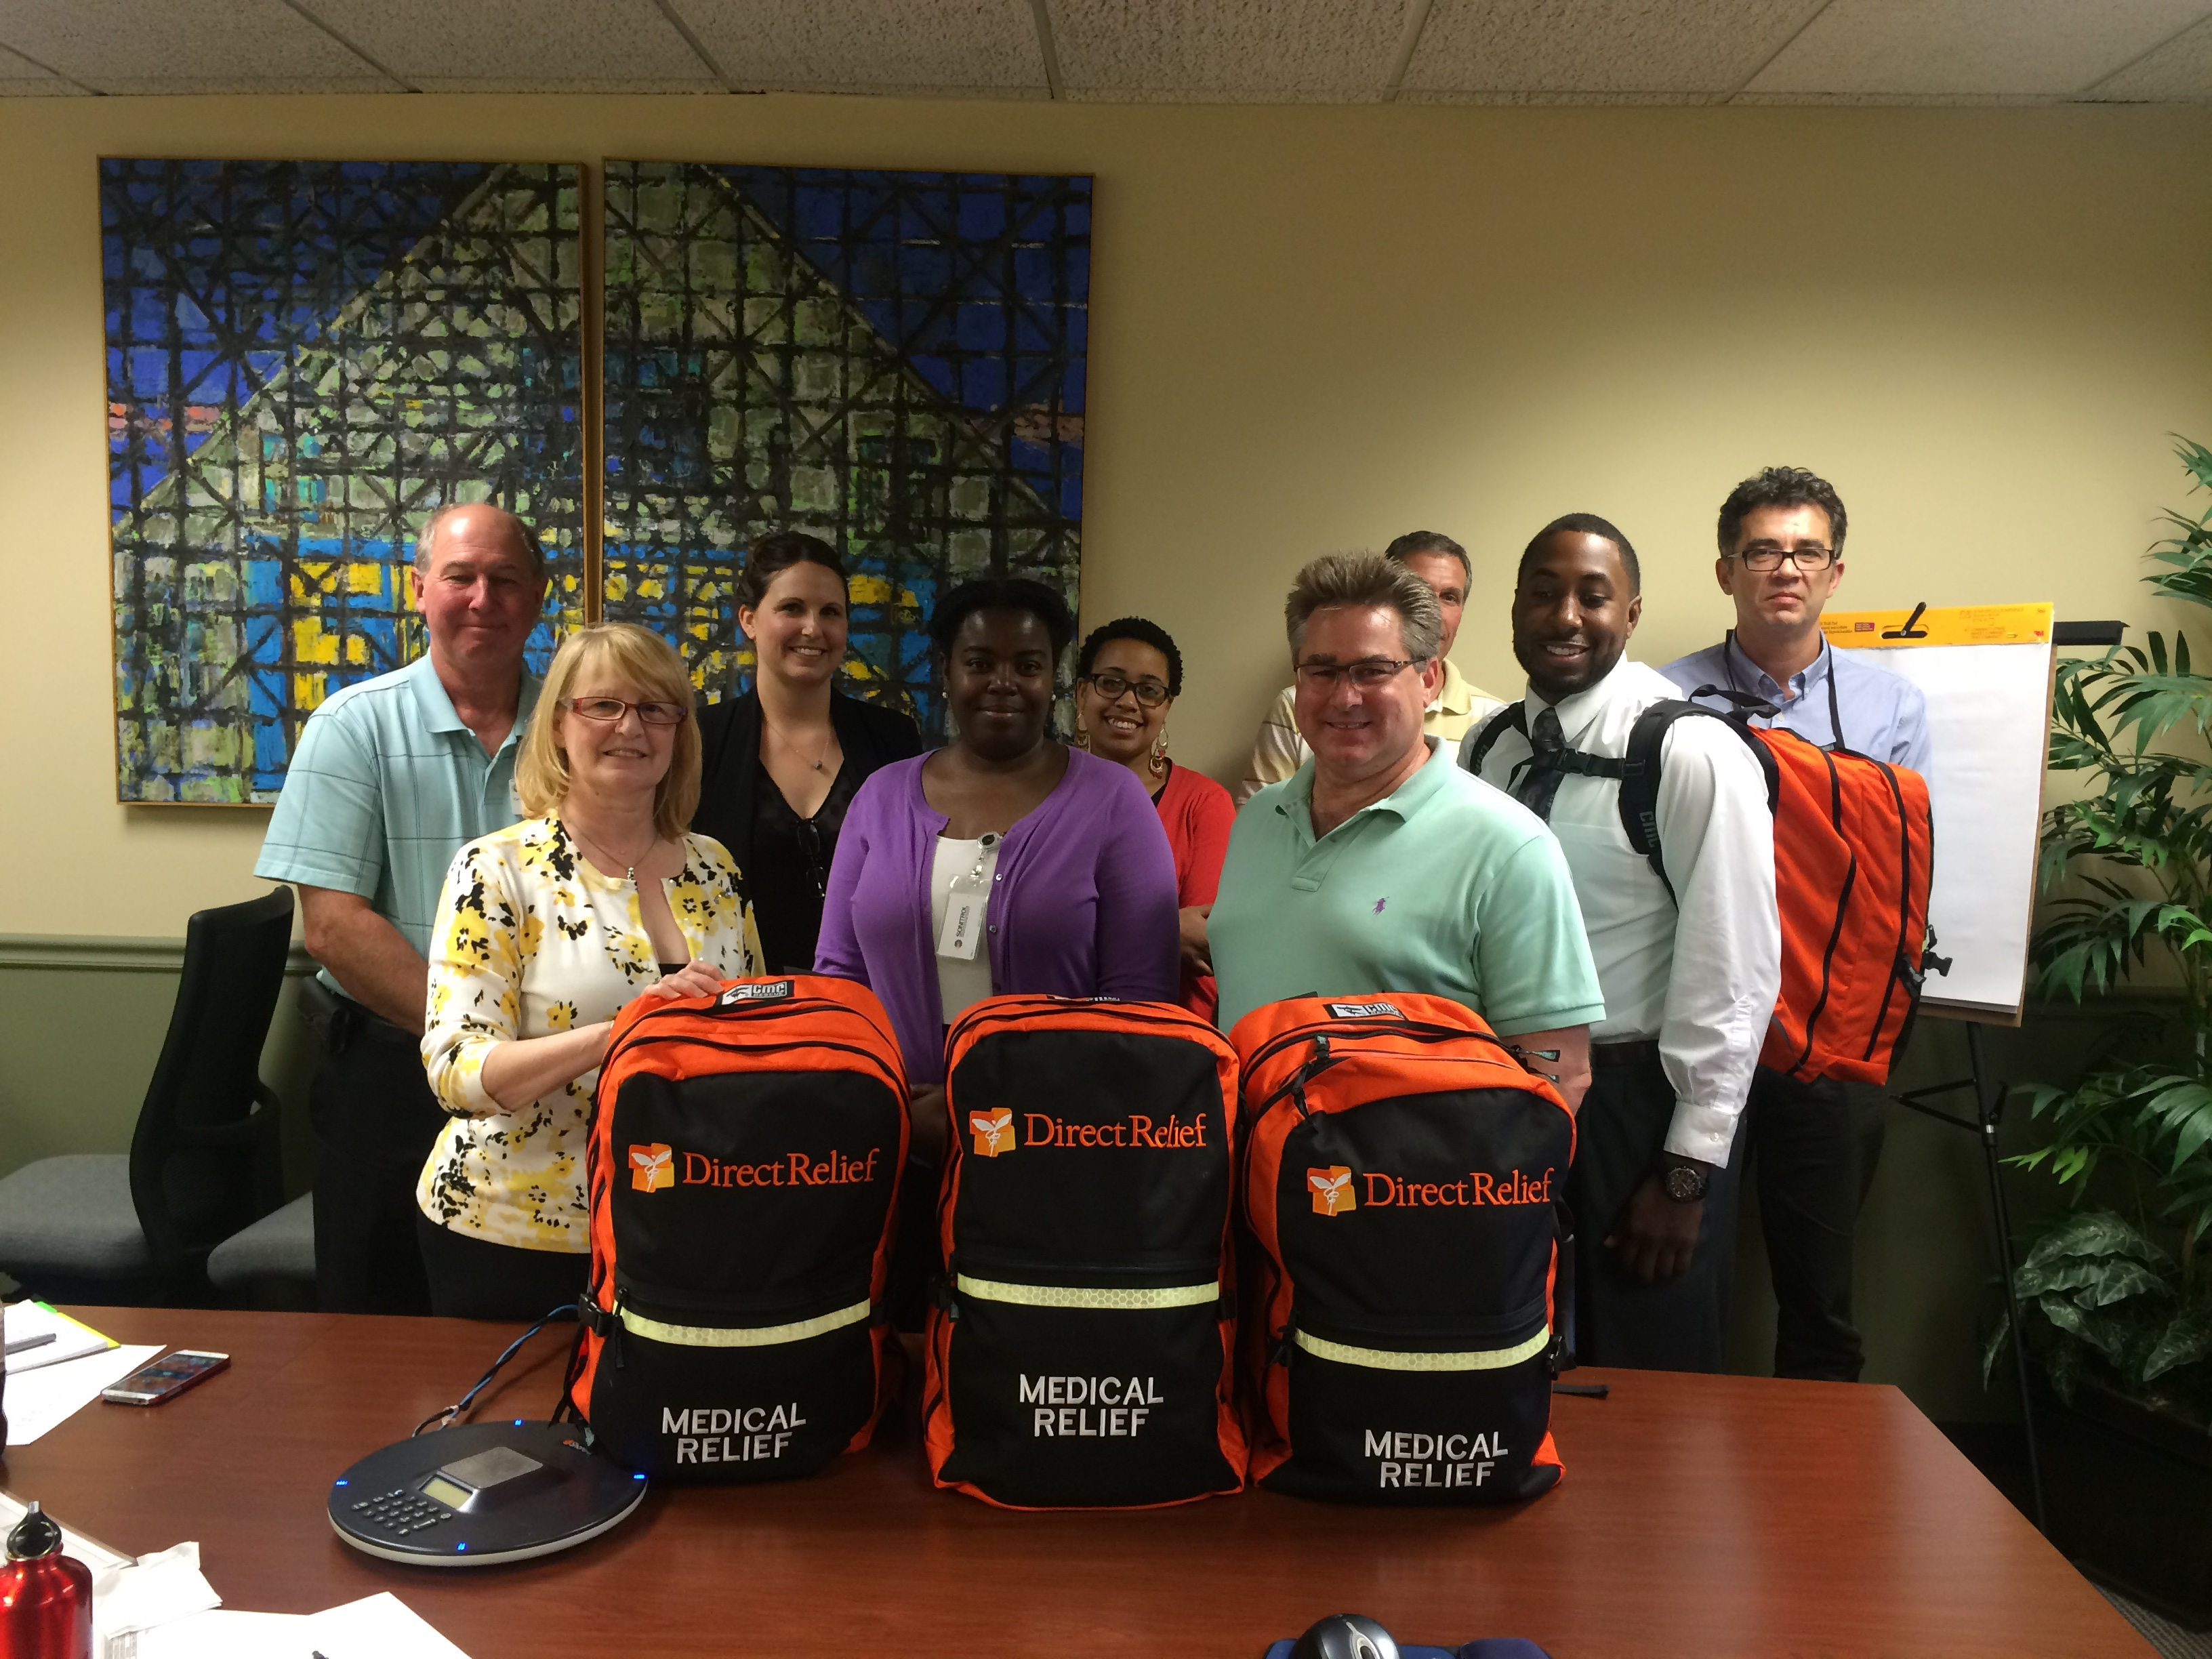 Community Health Center Association of Connecticut staff and health center representatives smile with the Direct Relief Medical Packs. Each of Connecticut's 16 health centers will receive a backpack.